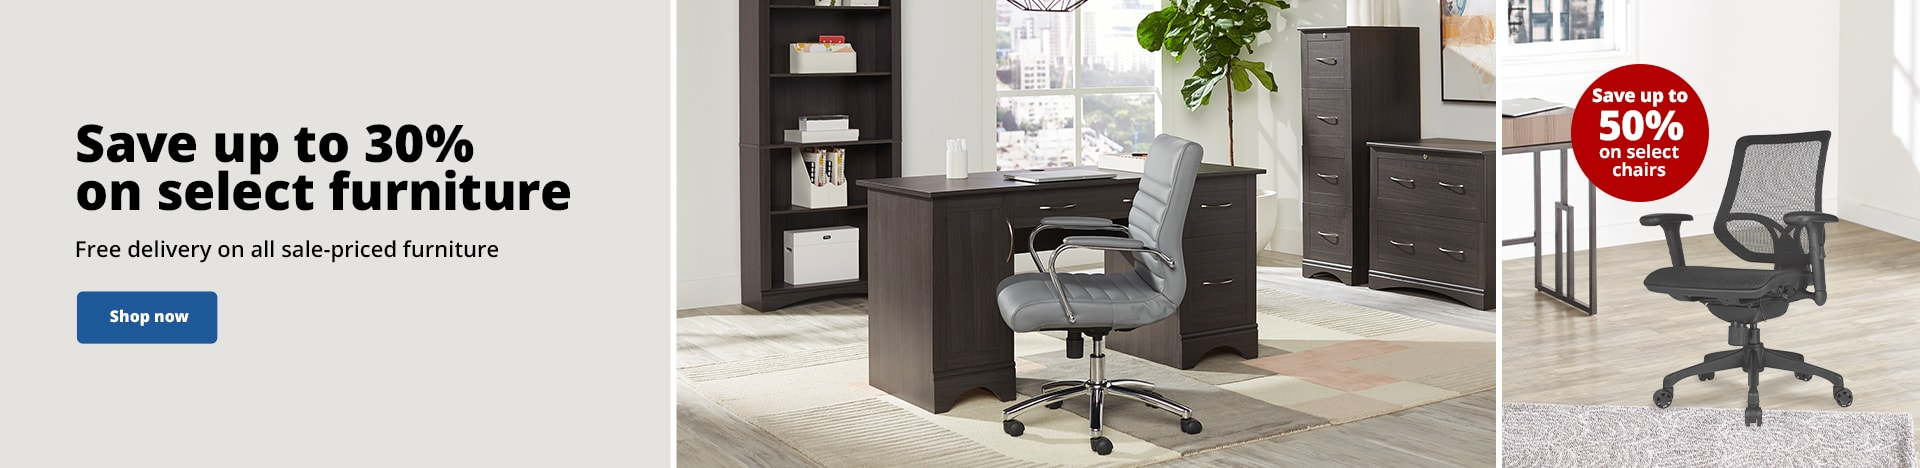 Save up to 30% on select furniture. Free delivery on all sale-priced furniture